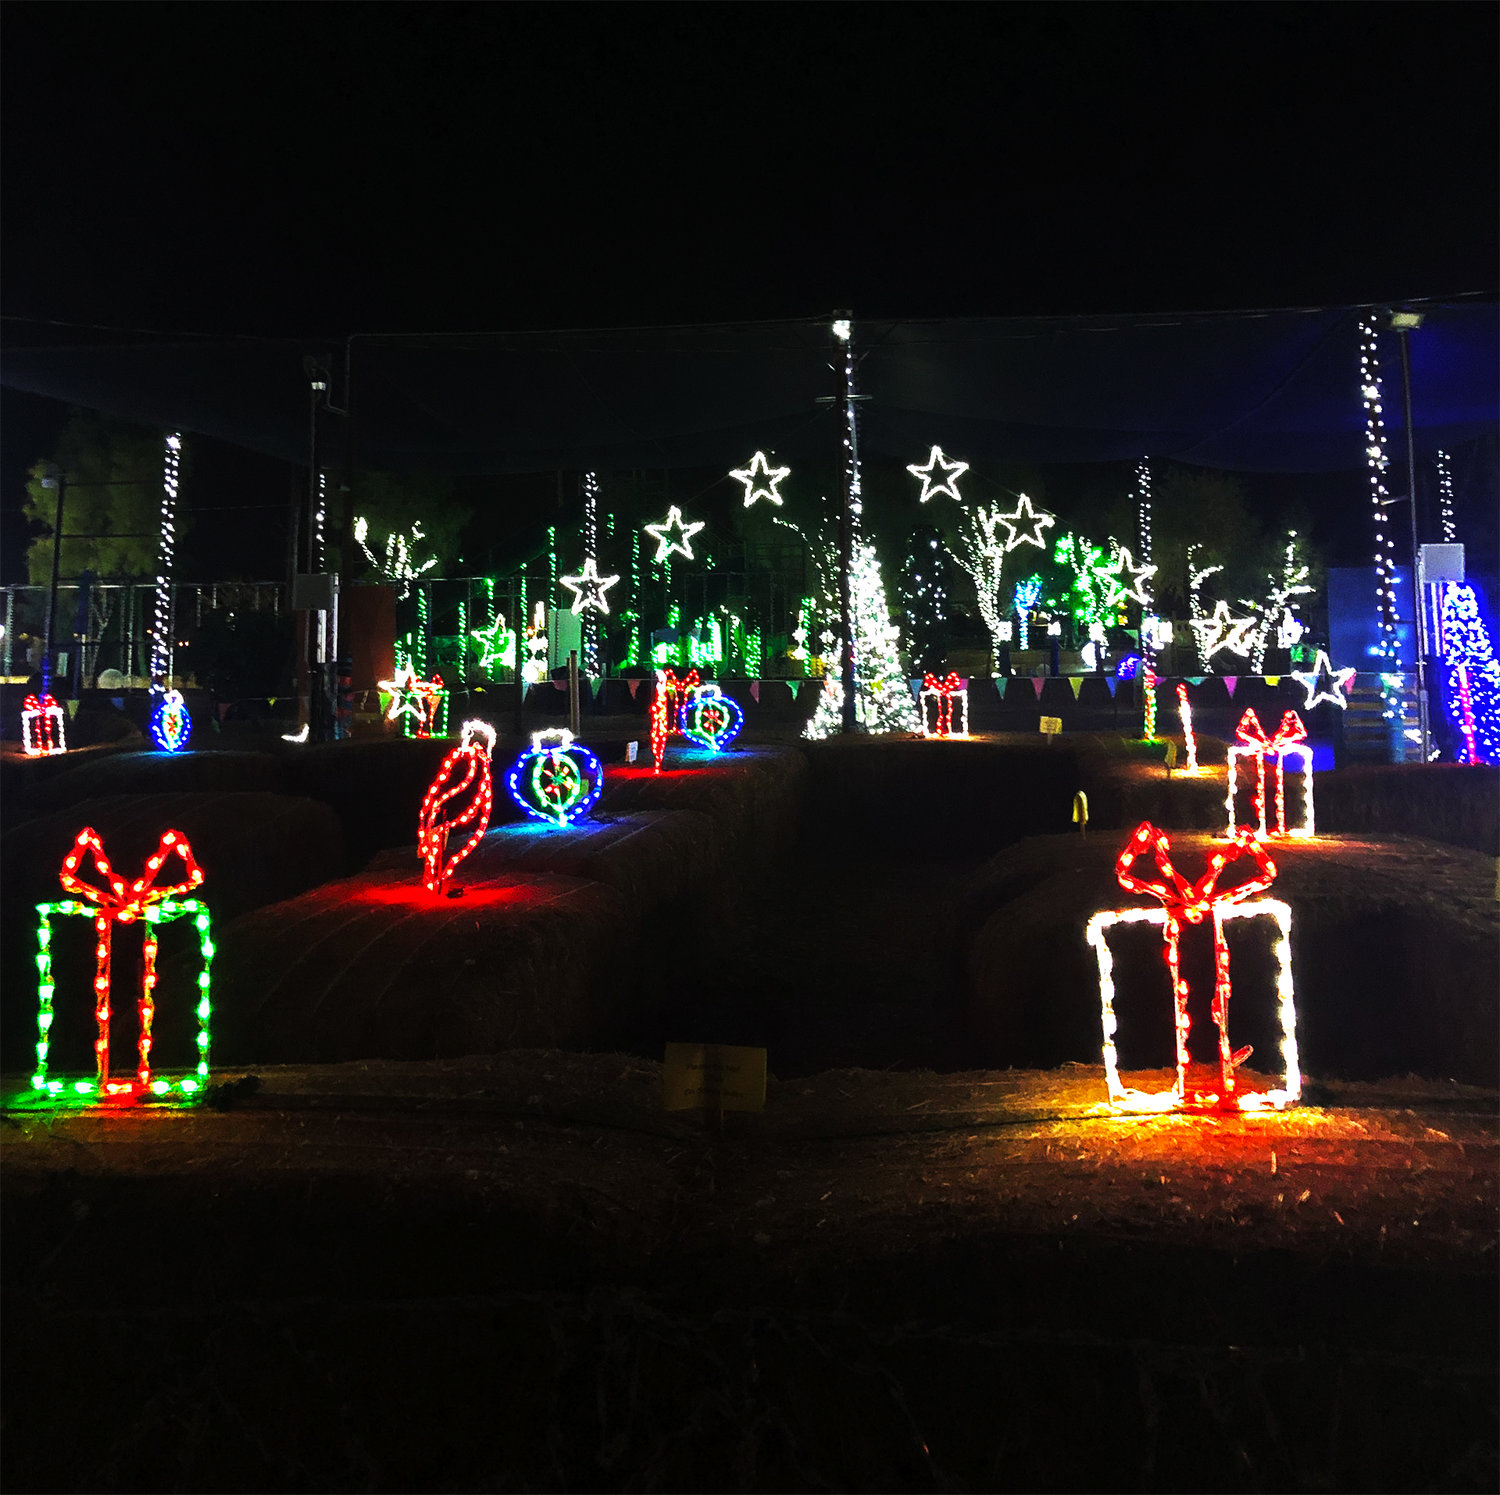 Each pre-lit prop, LED light strand and display at Lights at the Farm at Vertuccio Farm were strategically and methodically placed, according to a release.